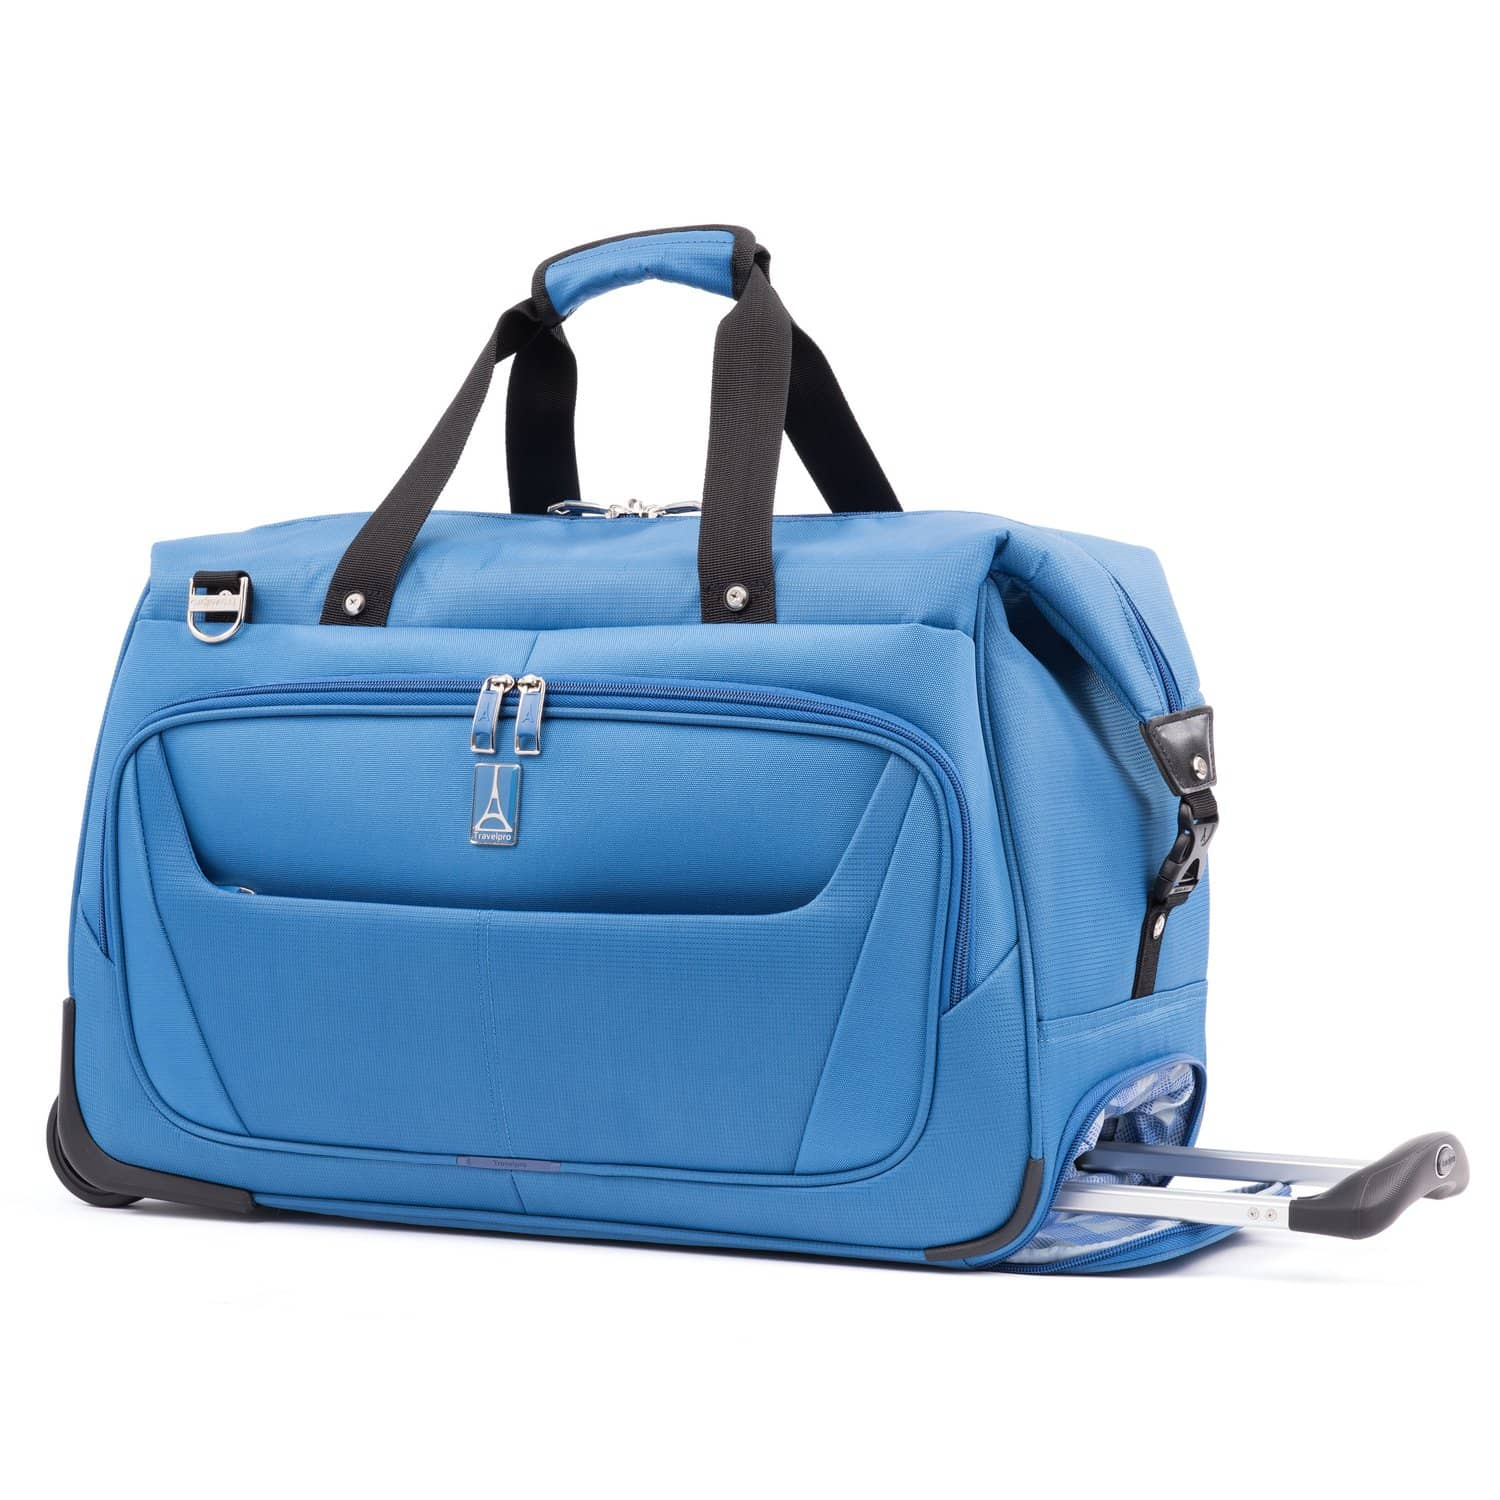 Travelpro Maxlite® 5 Carry-on Rolling Duffel AZURE BLUE